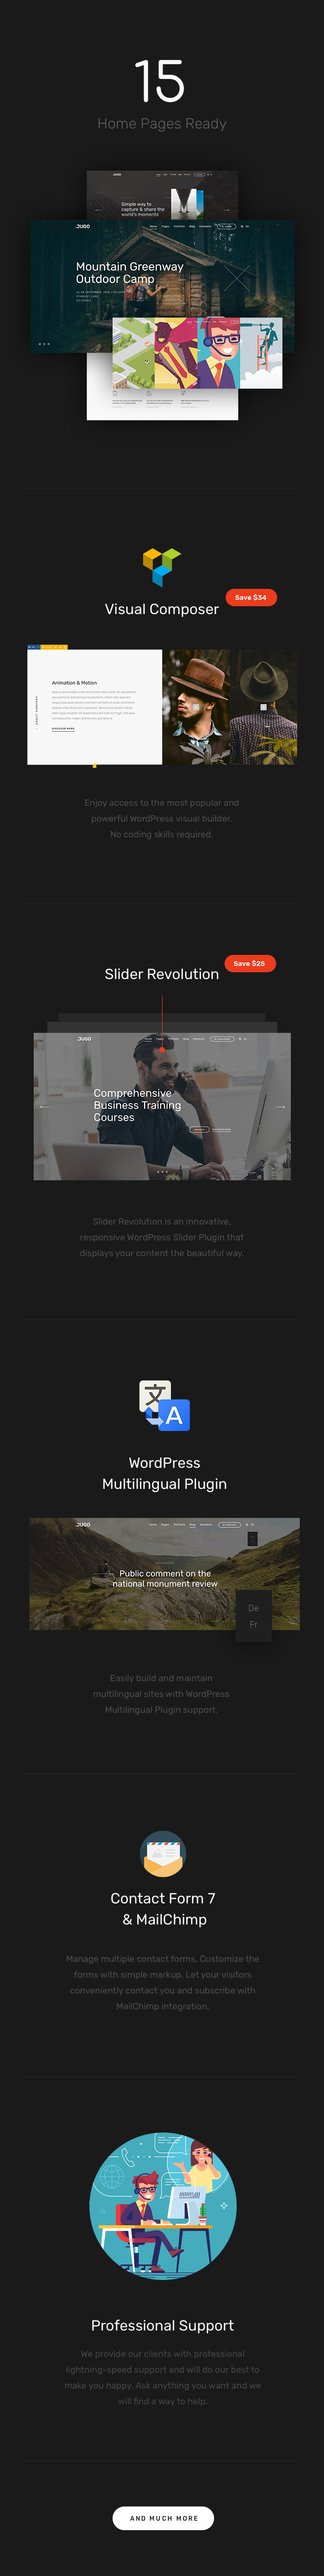 Jugo — Responsive Multipurpose WordPress Theme